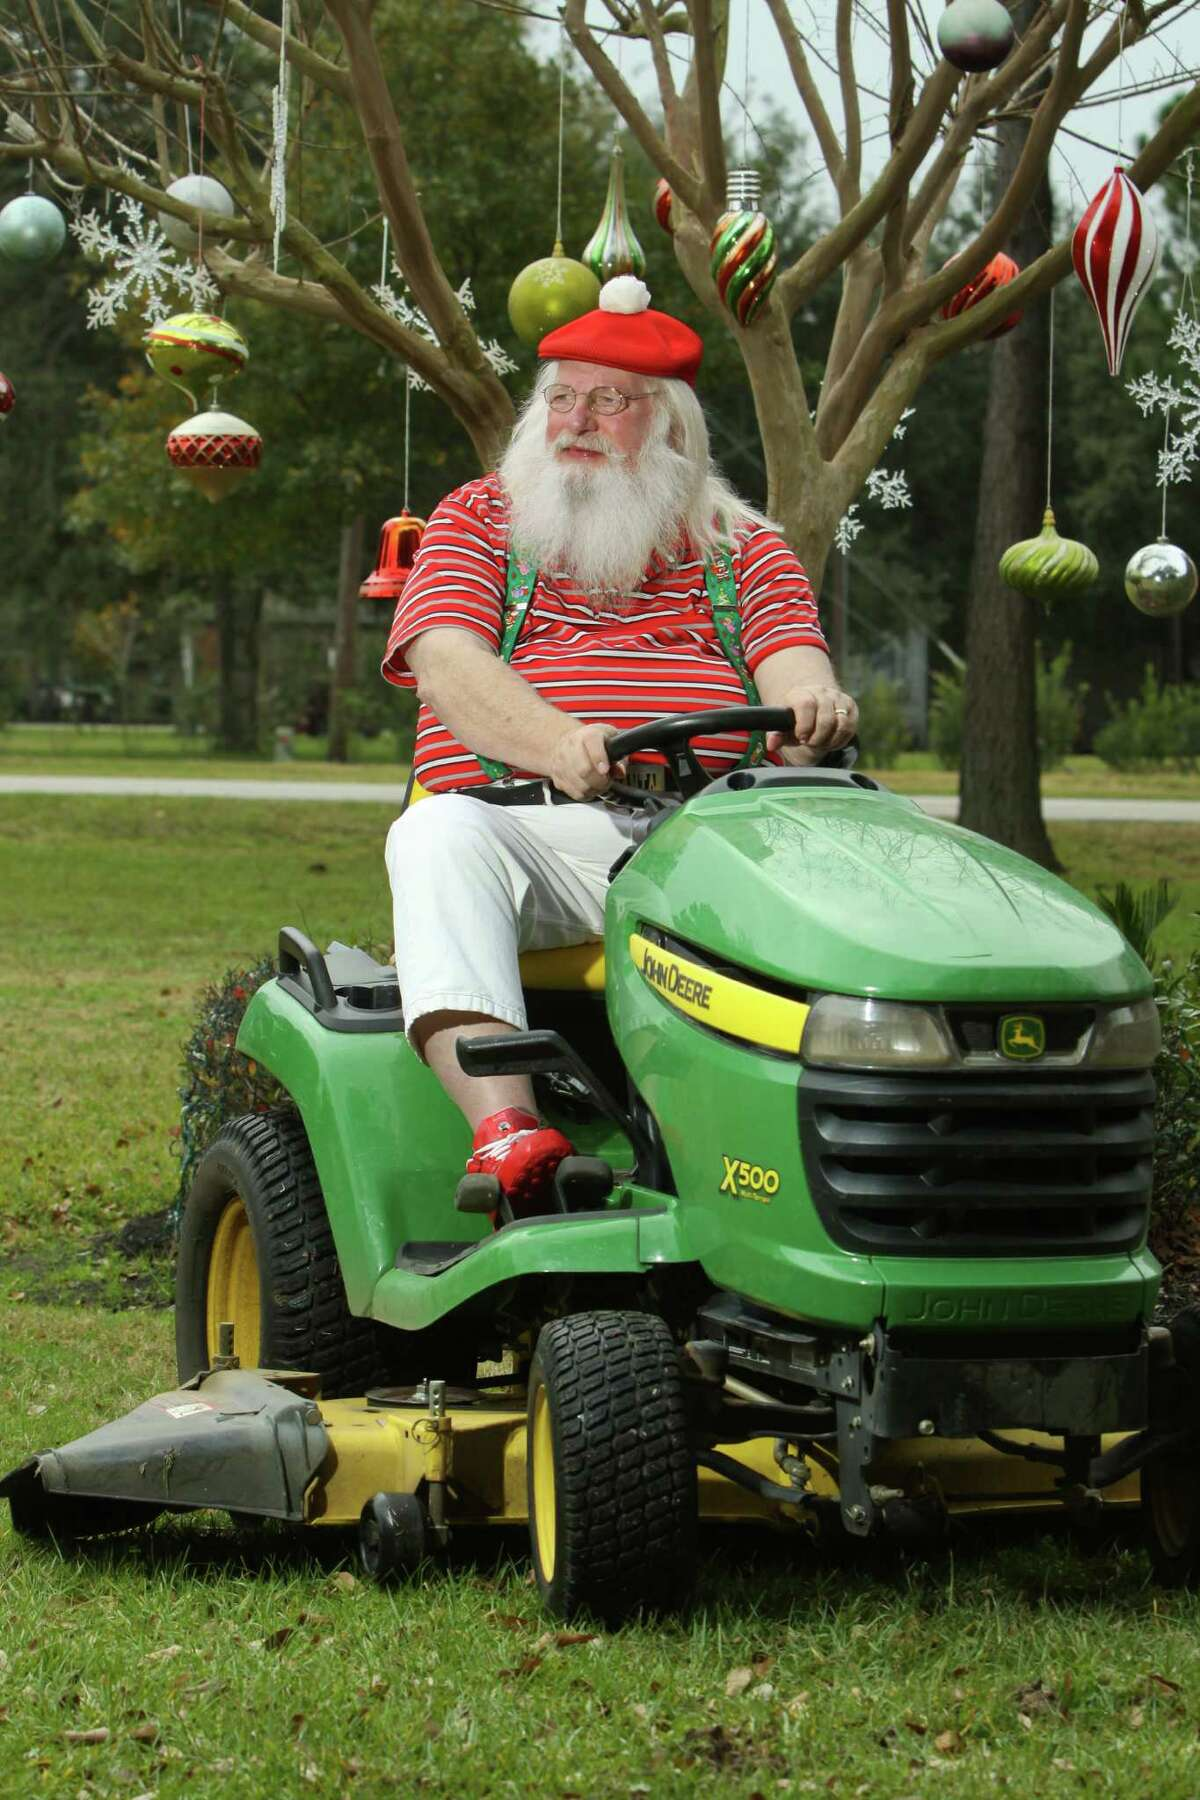 (For the Chronicle/Gary Fountain, December 20 2013) Santa Jim Fletcher on his John Deere lawnmower. Jim said that he occasionally makes a short-term trade of his reindeer for the John Deere. Jim isn't just Santa Claus in the weeks before Christmas. His white beard is year round, and during the year he attends Claus classes and conventions.